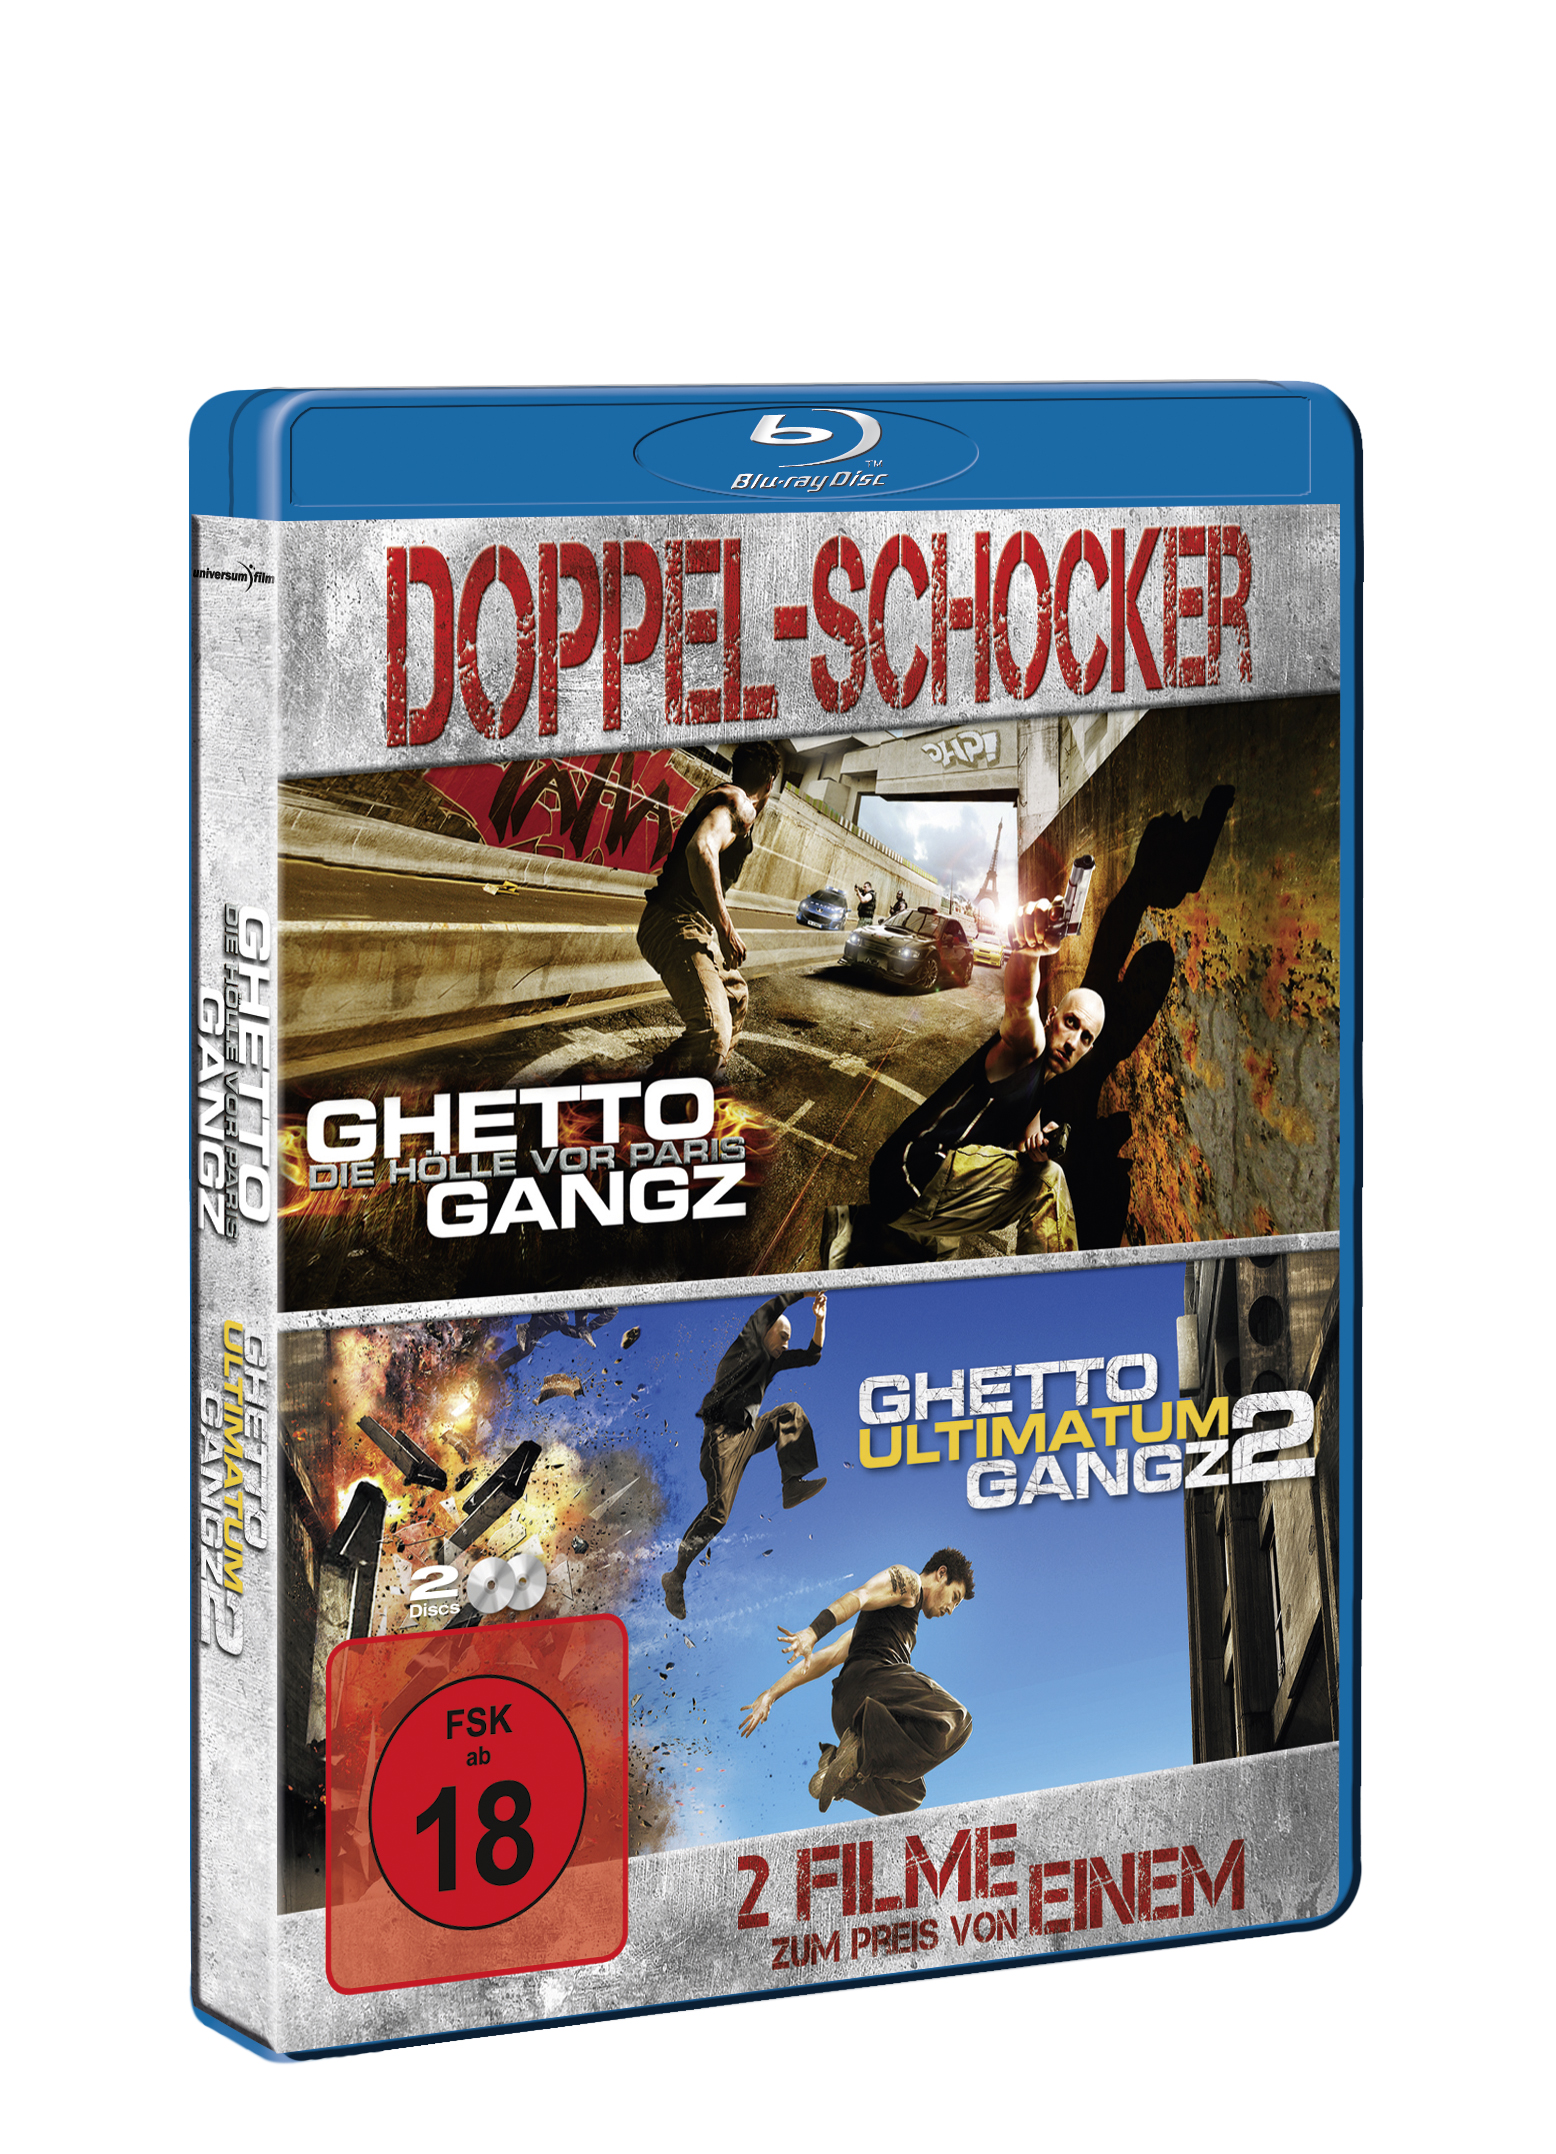 Ghettogangz_1__2_DoppelSchocker_BD_Bluray_Box_886919133394_3D